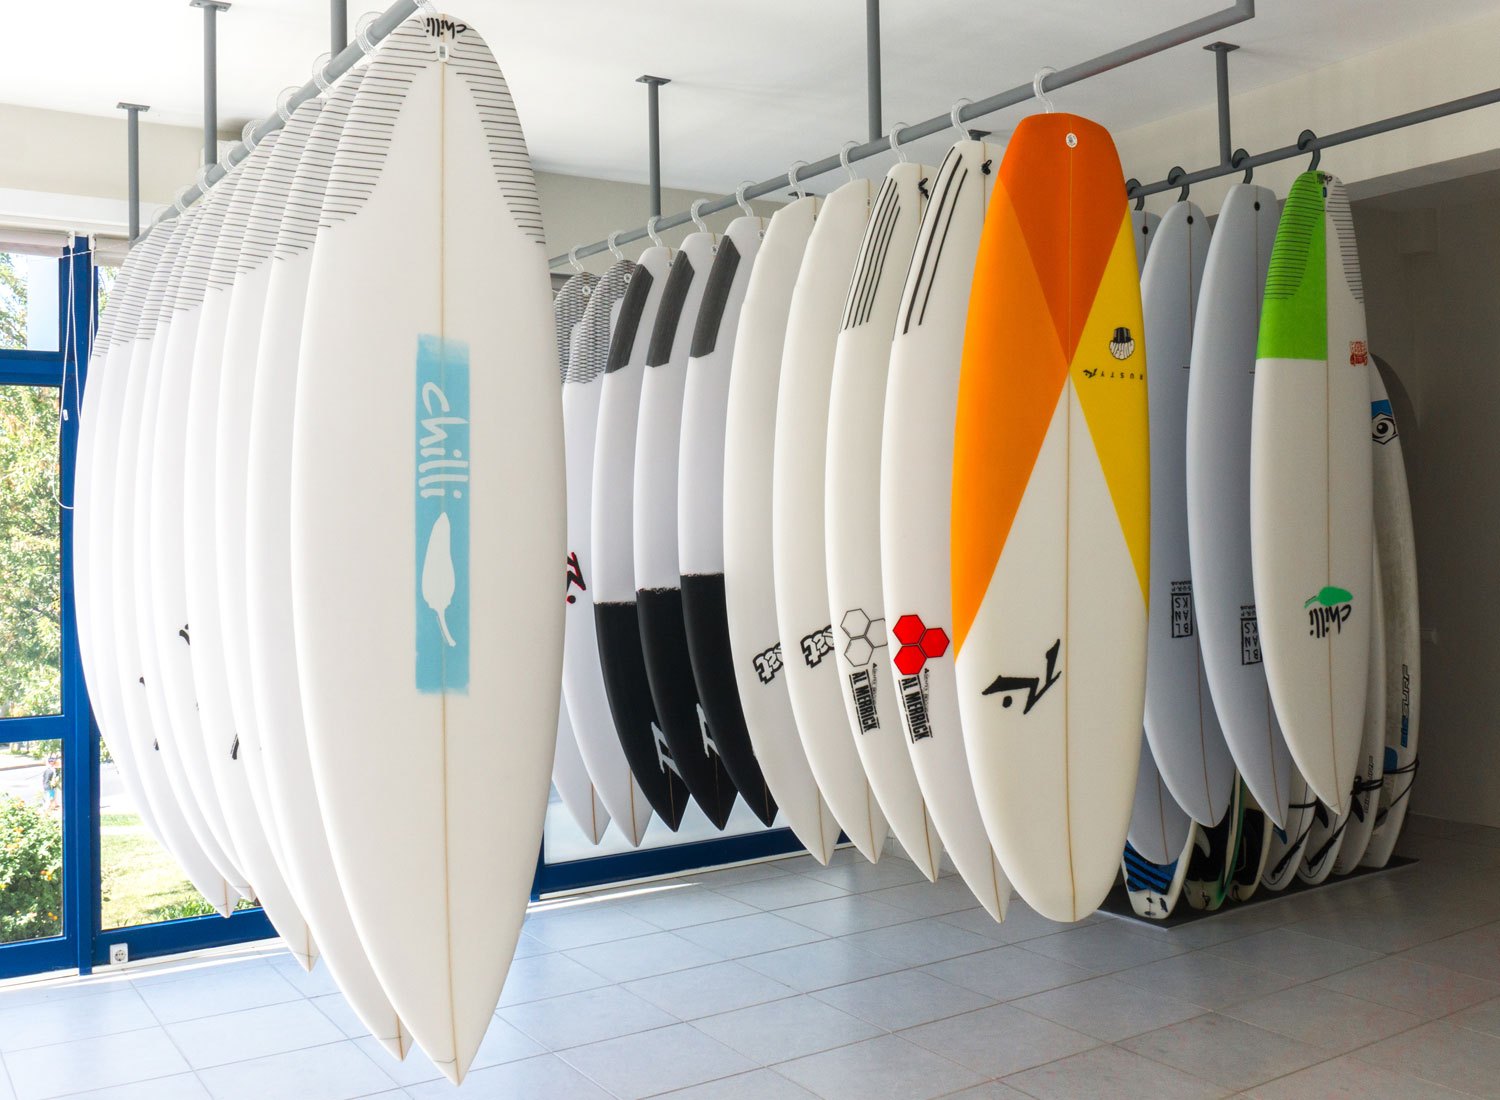 Surf shop in Lagos Algarve Portugal, test drive surfboards, try before you buy